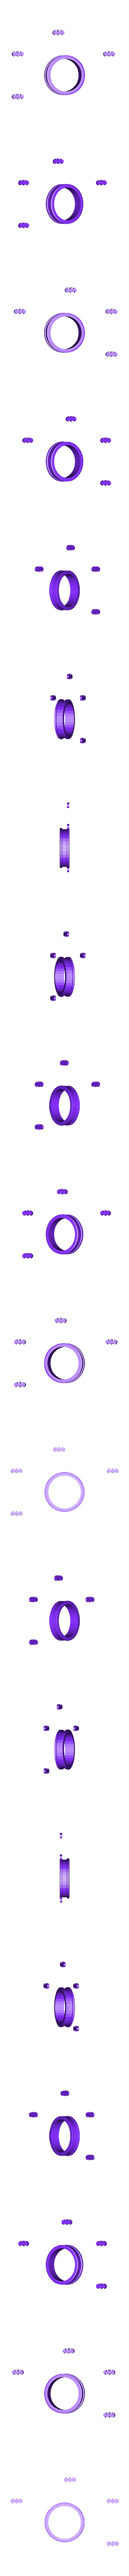 CE3_batman ring.stl Download free STL file Batman riing • Model to 3D print, swivaller